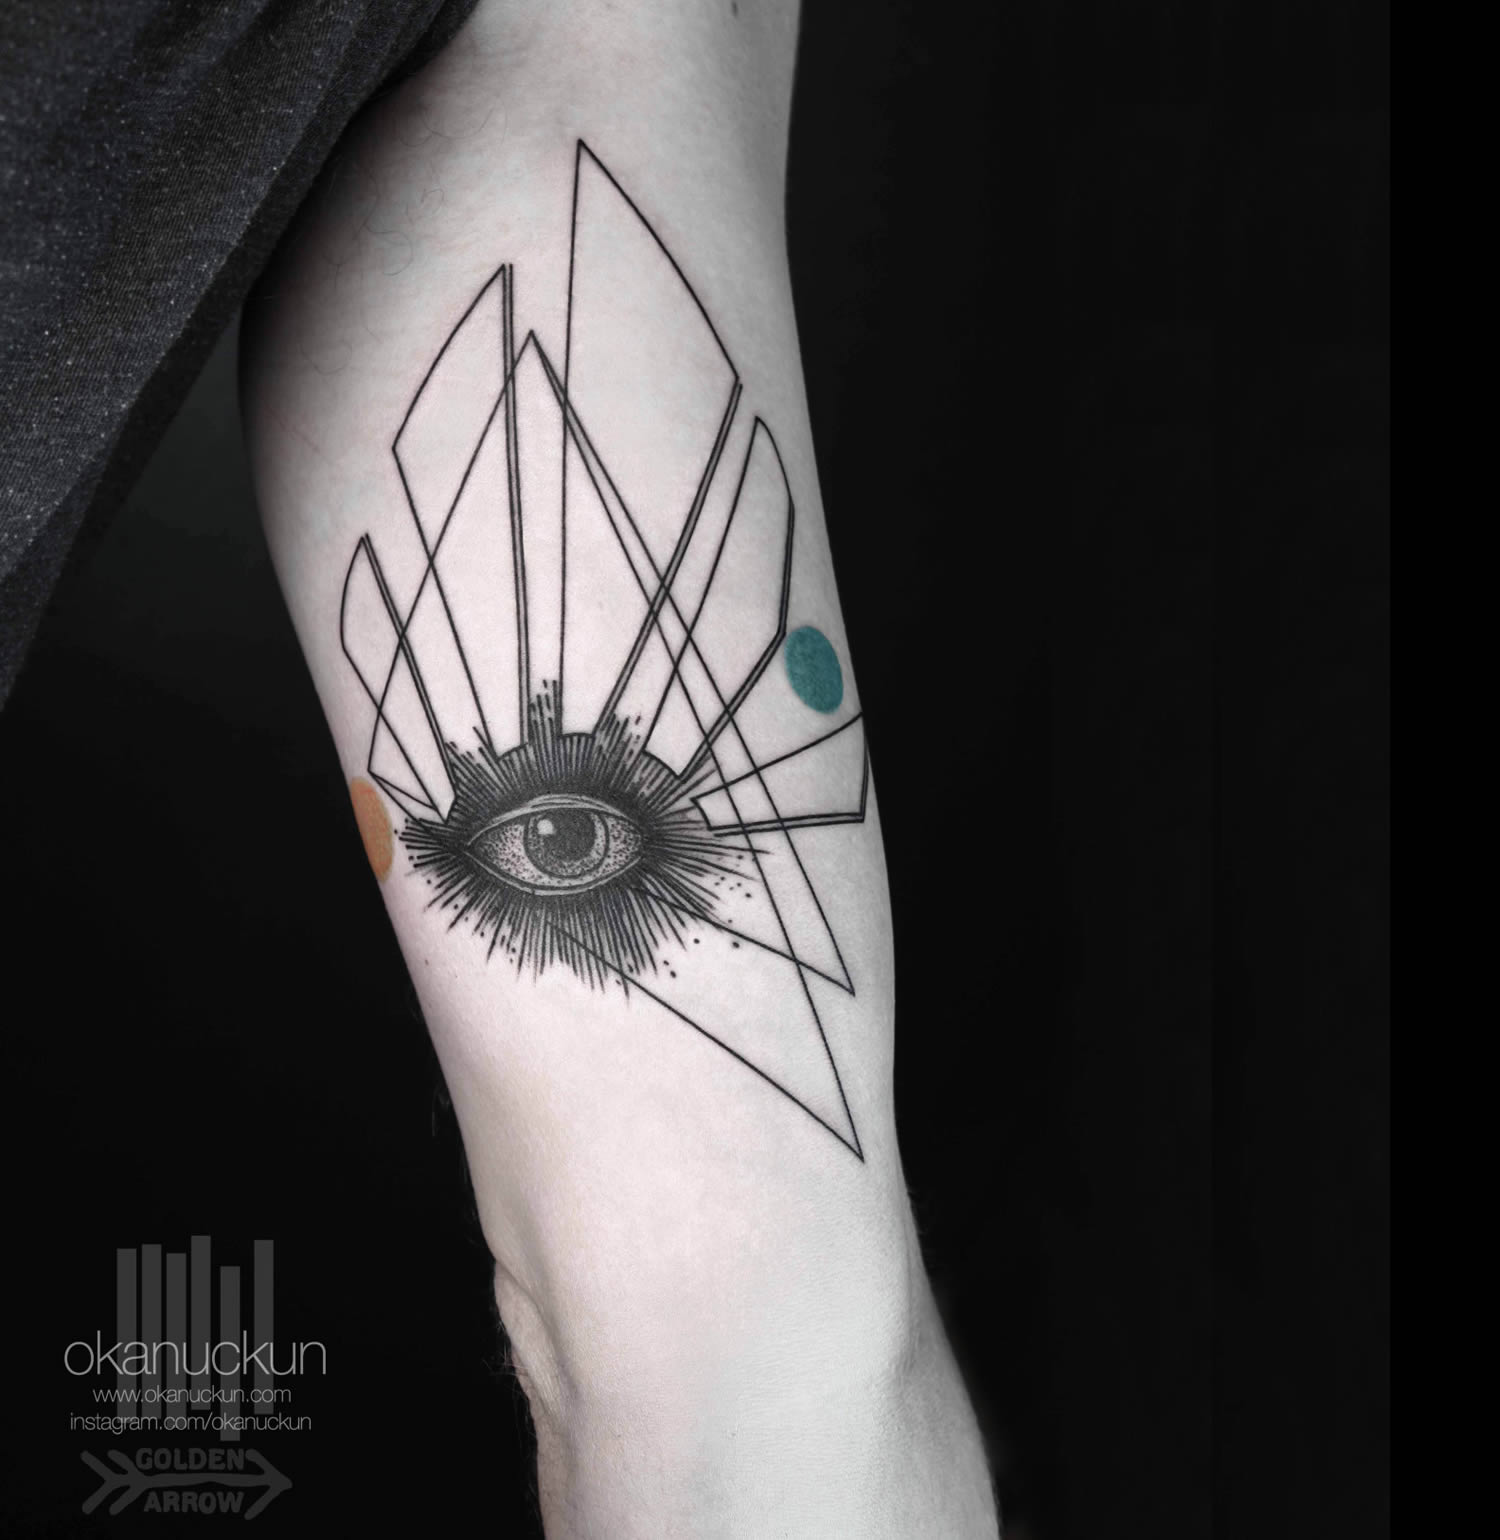 Lines and Dots: The Blackwork of Tattooer Okan Uckun